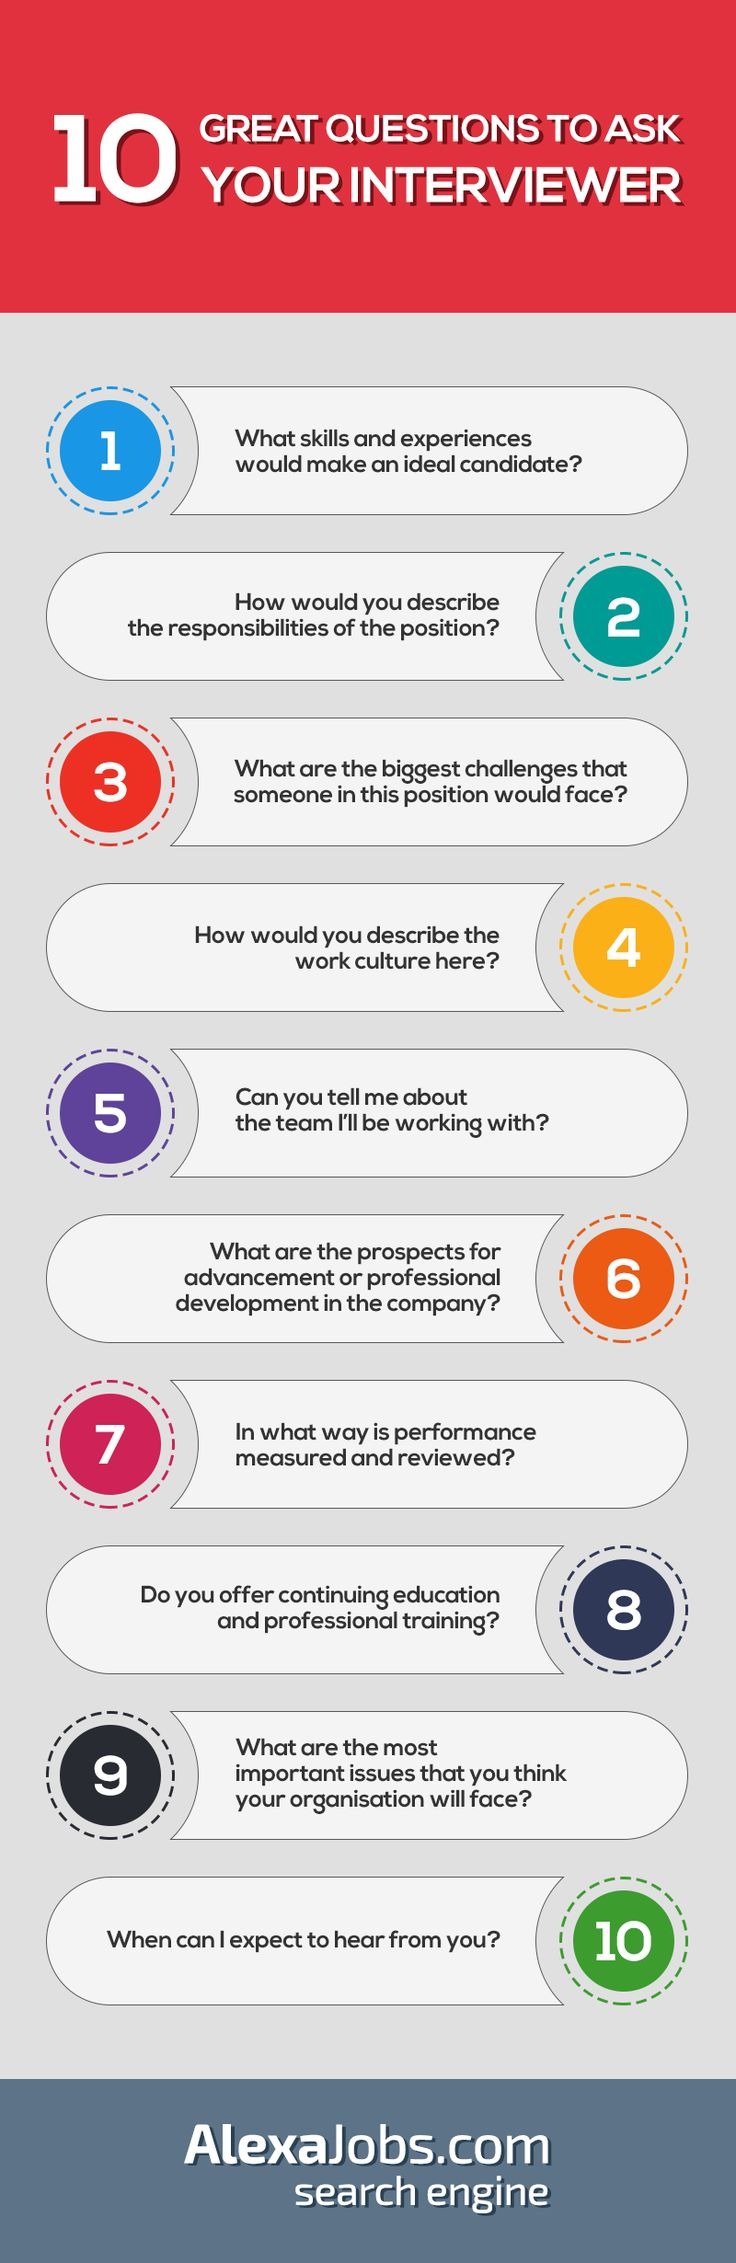 ideas about job interview questions job 10 great questions to ask your interviewer infographic often job interviews can feel like an interrogation but they re meant to be a conversation